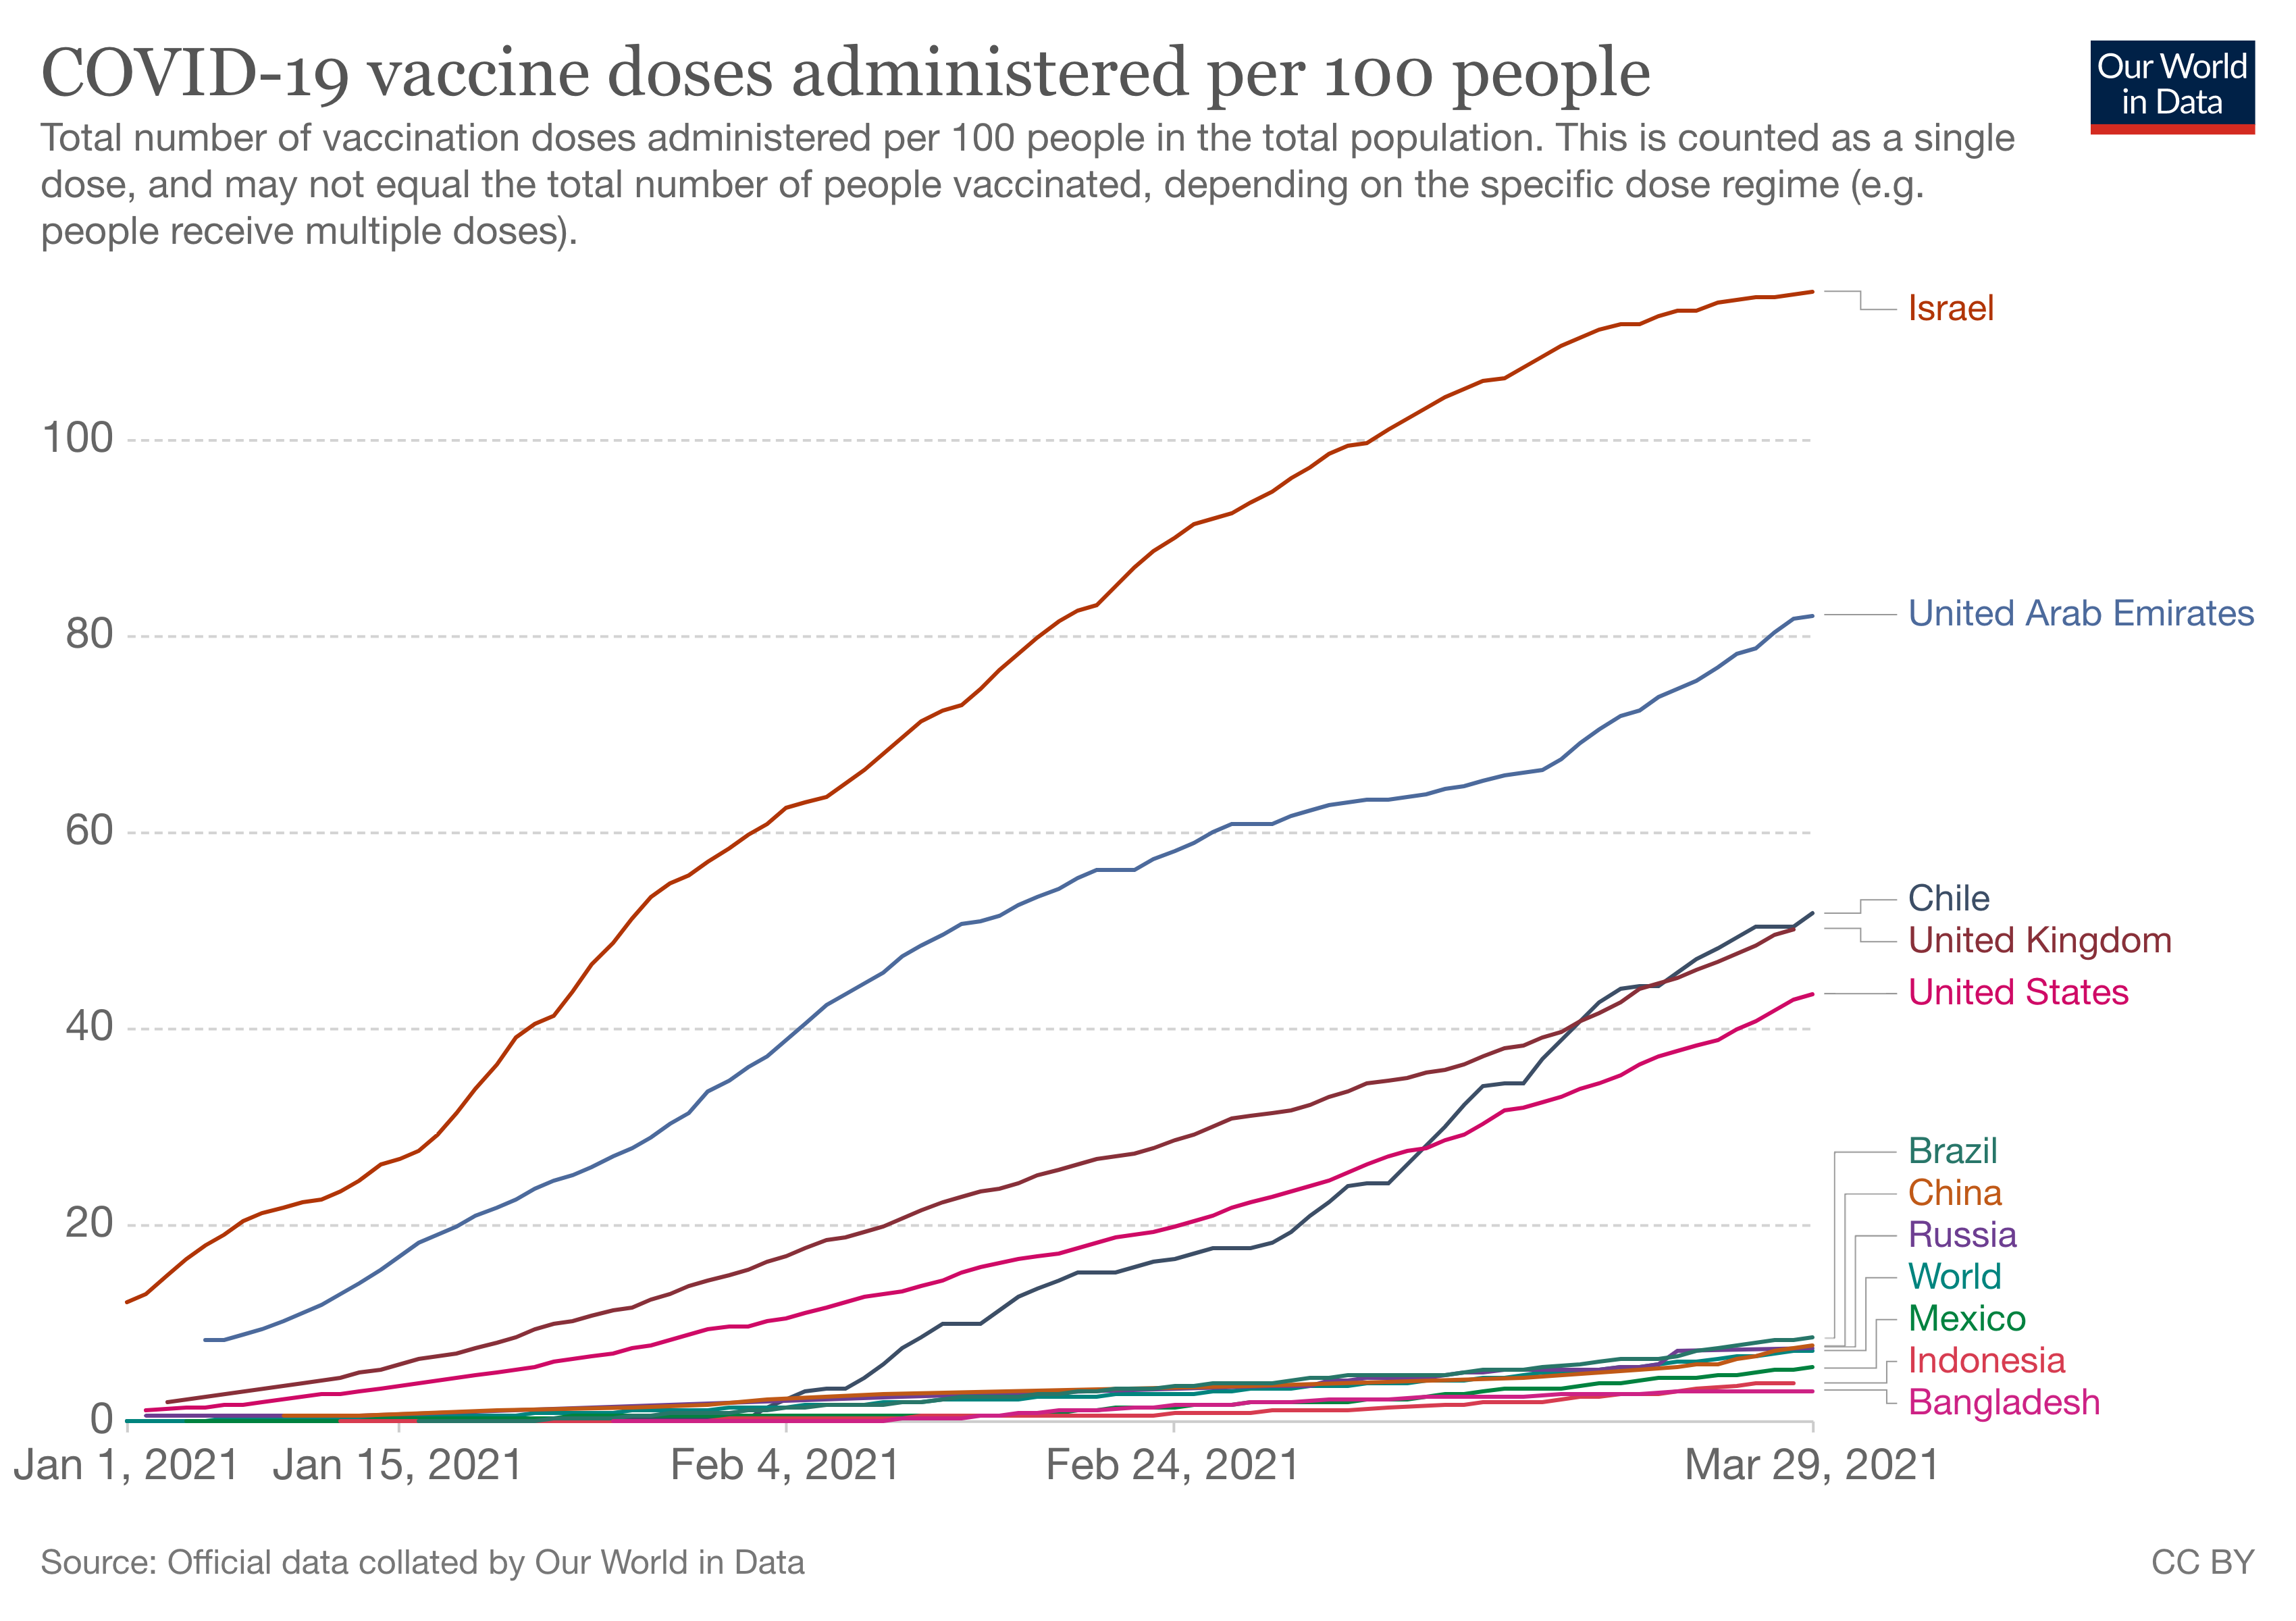 COVID-19 vaccine doses administered per 100 people in selected countries.